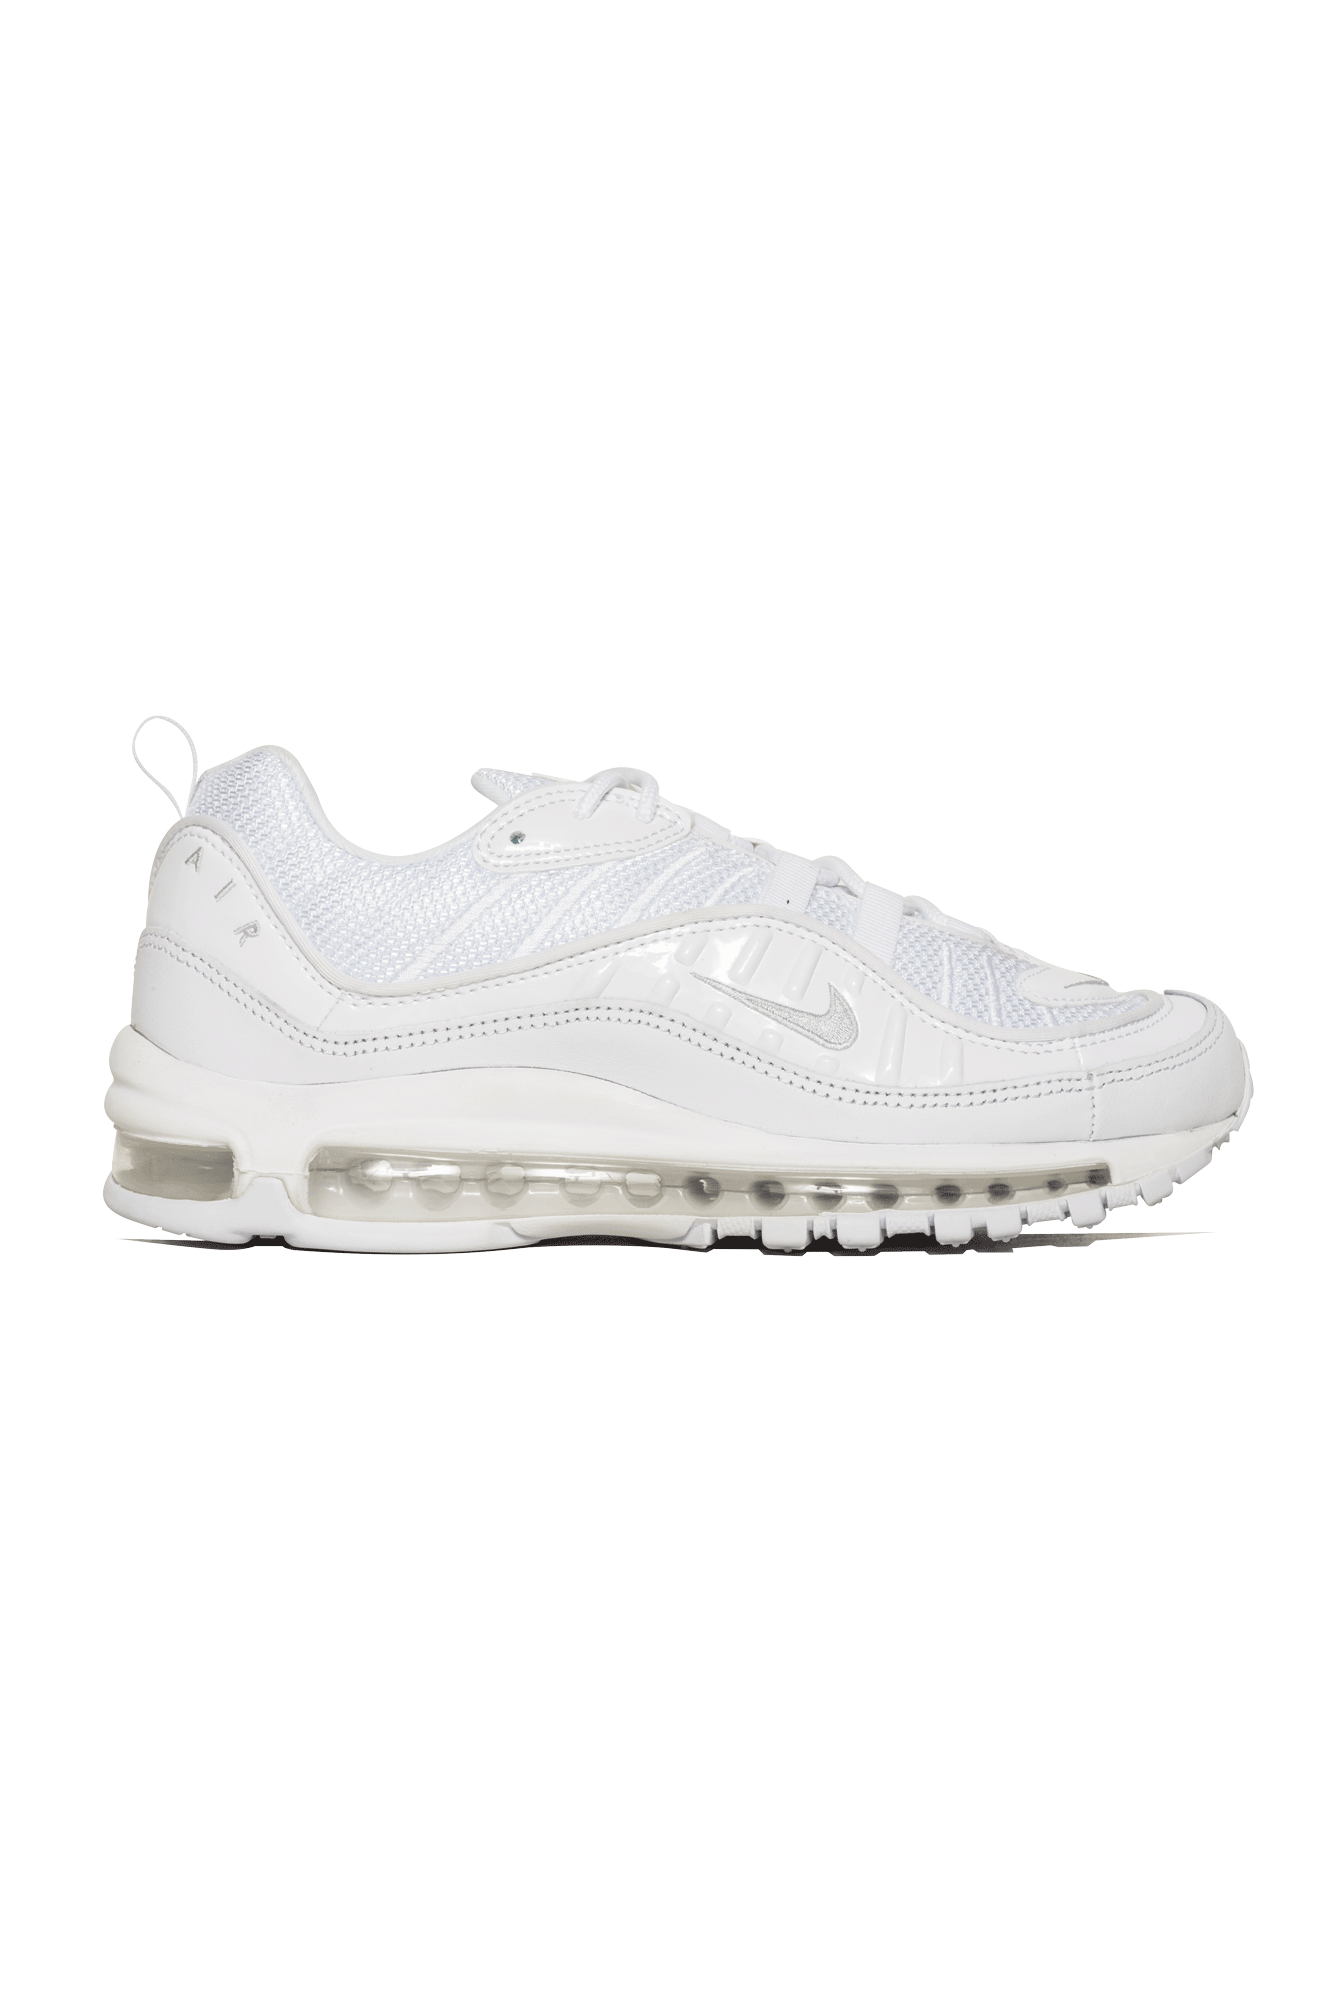 Sneakers Nike Air Max 98 White - One Block Down